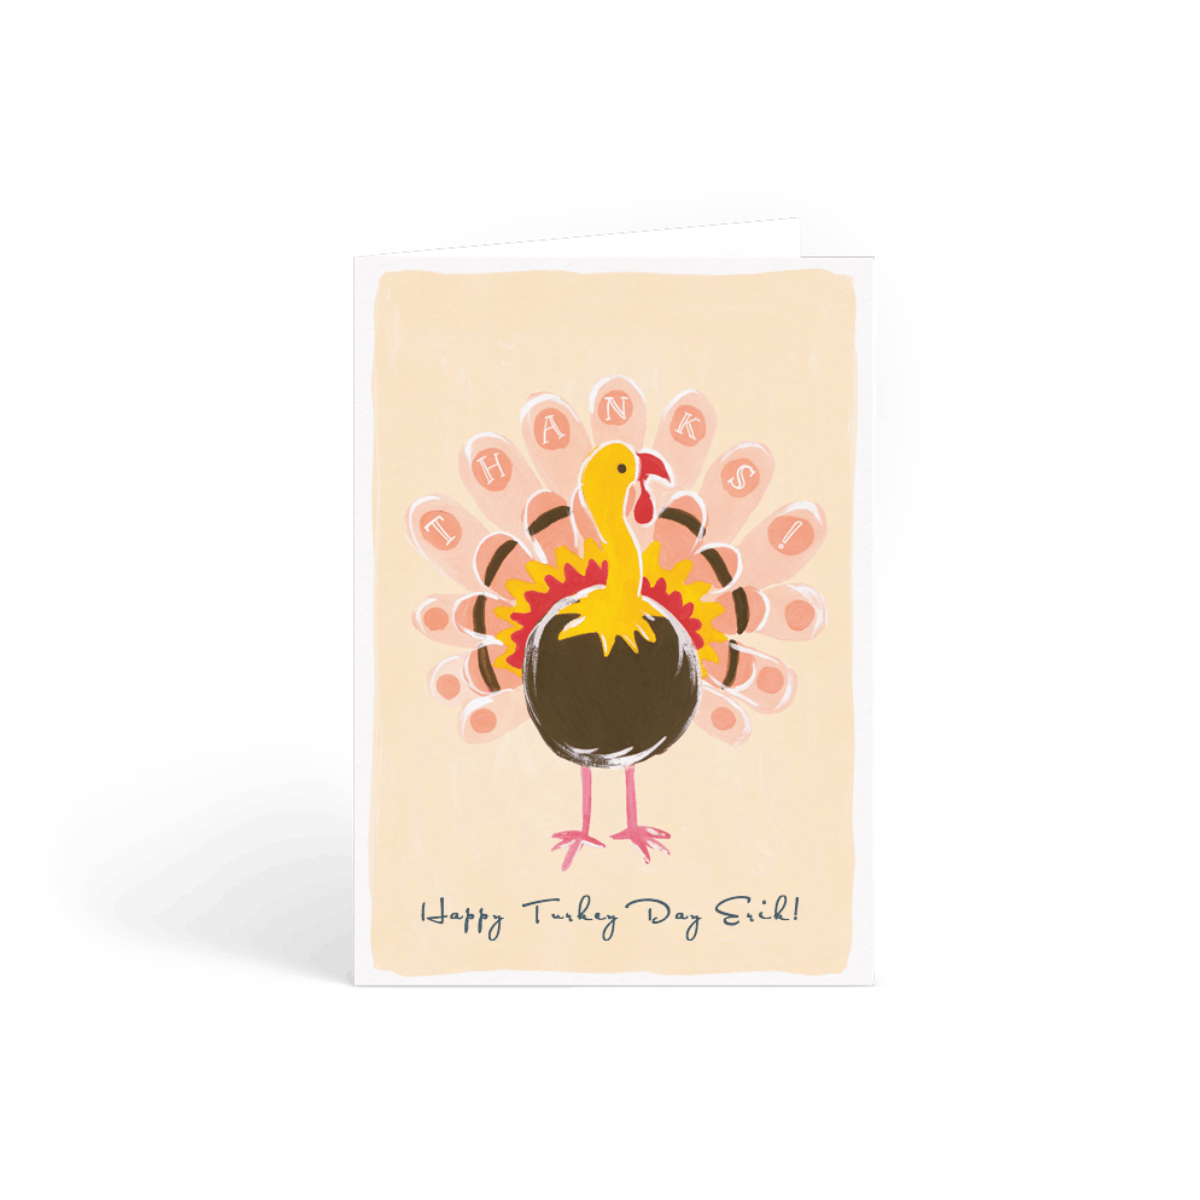 Https%3a%2f%2fwww.papier.com%2fproduct image%2f2144%2f2%2fthanksgiving turkey 598 front 1473929660.png?ixlib=rb 1.1